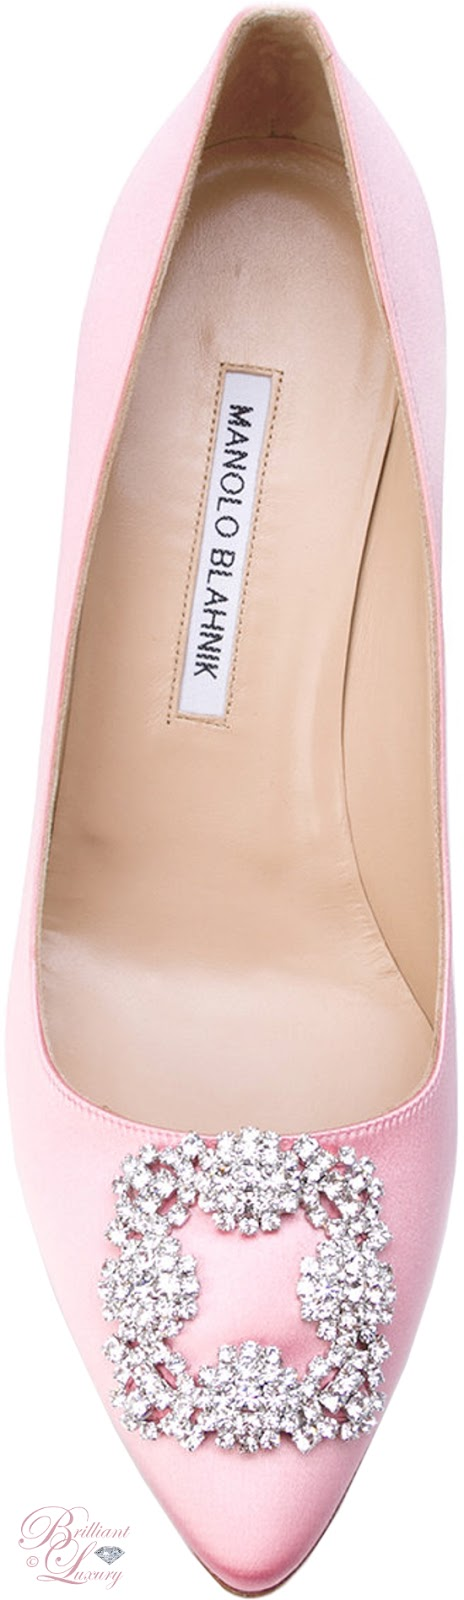 Brilliant Luxury ♦ Manolo Blahnik Hangisi Pumps